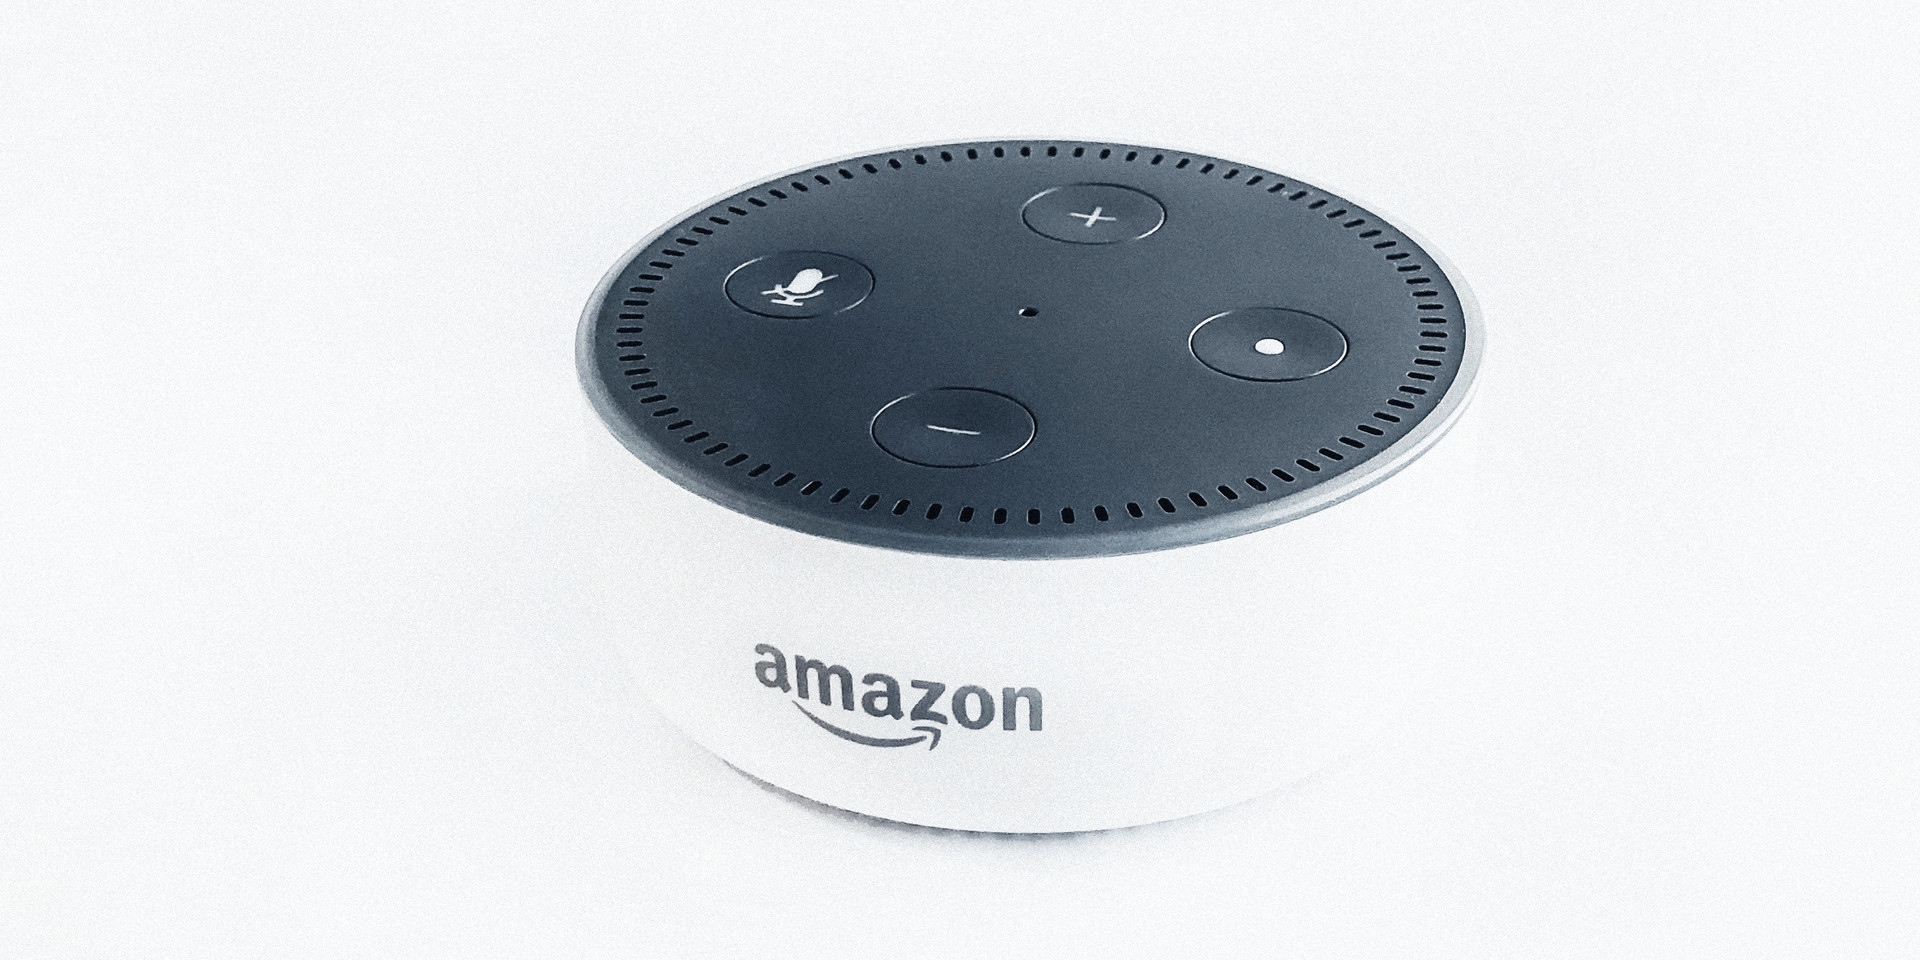 Amazon's Alexa may have witnessed alleged Florida murder, authorities say